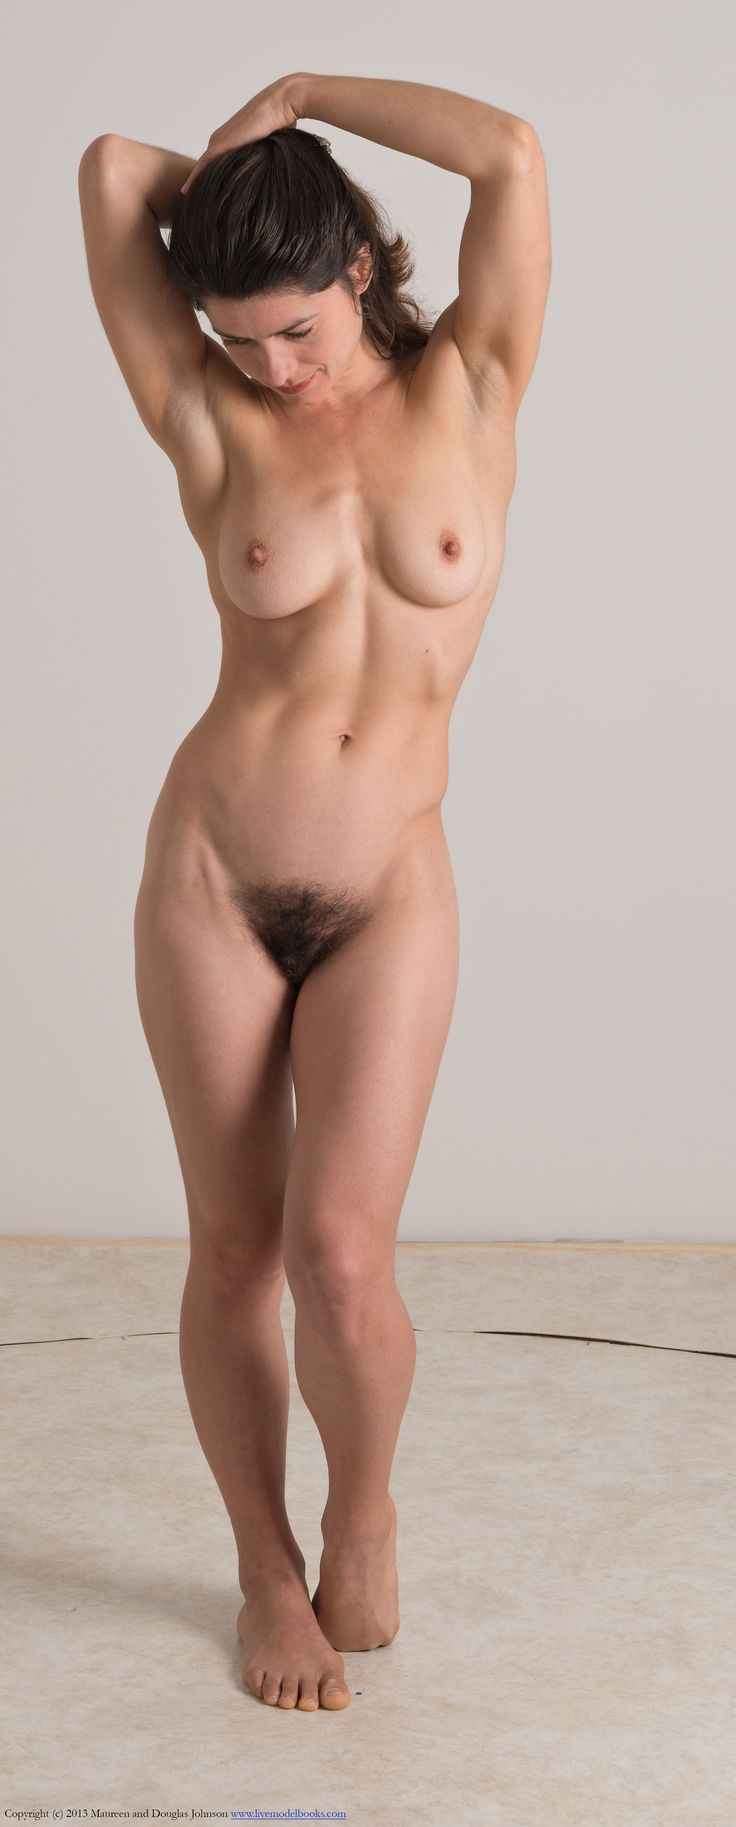 Nude full figure female model